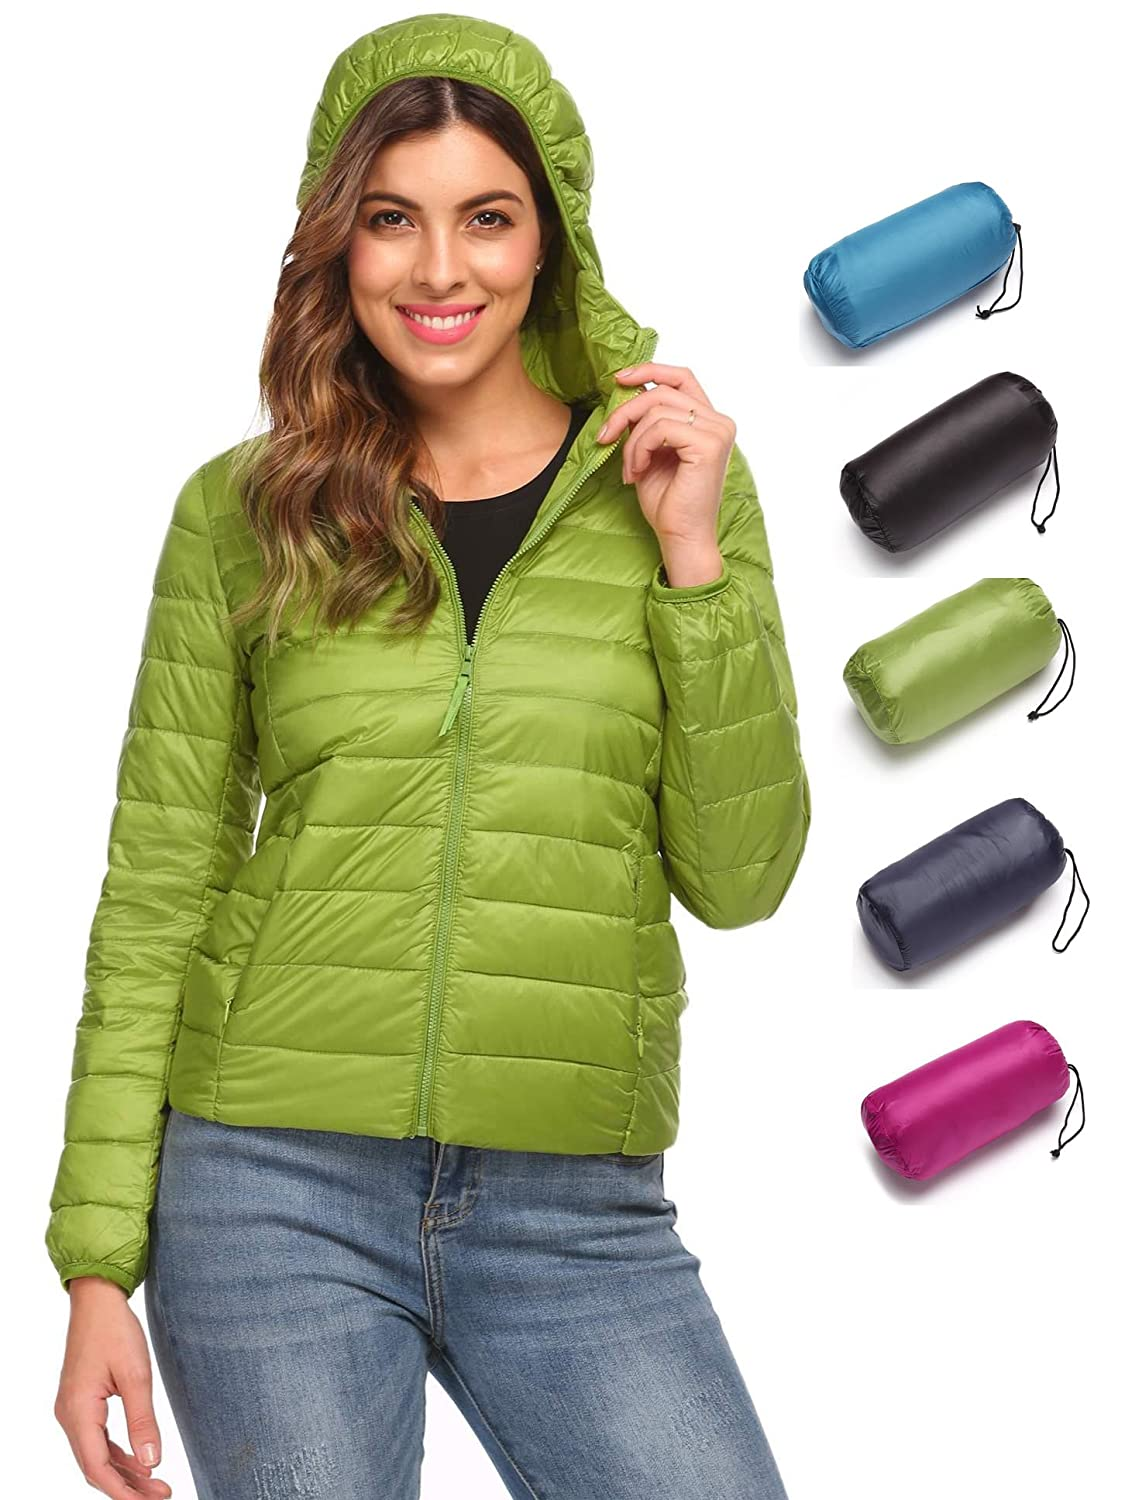 Corgy OUTERWEAR Corgy レディース S|Bud B076DYPZFD S|Bud OUTERWEAR Green Bud Green S, オオクワムラ:556f61f5 --- magento.marketcentral.in